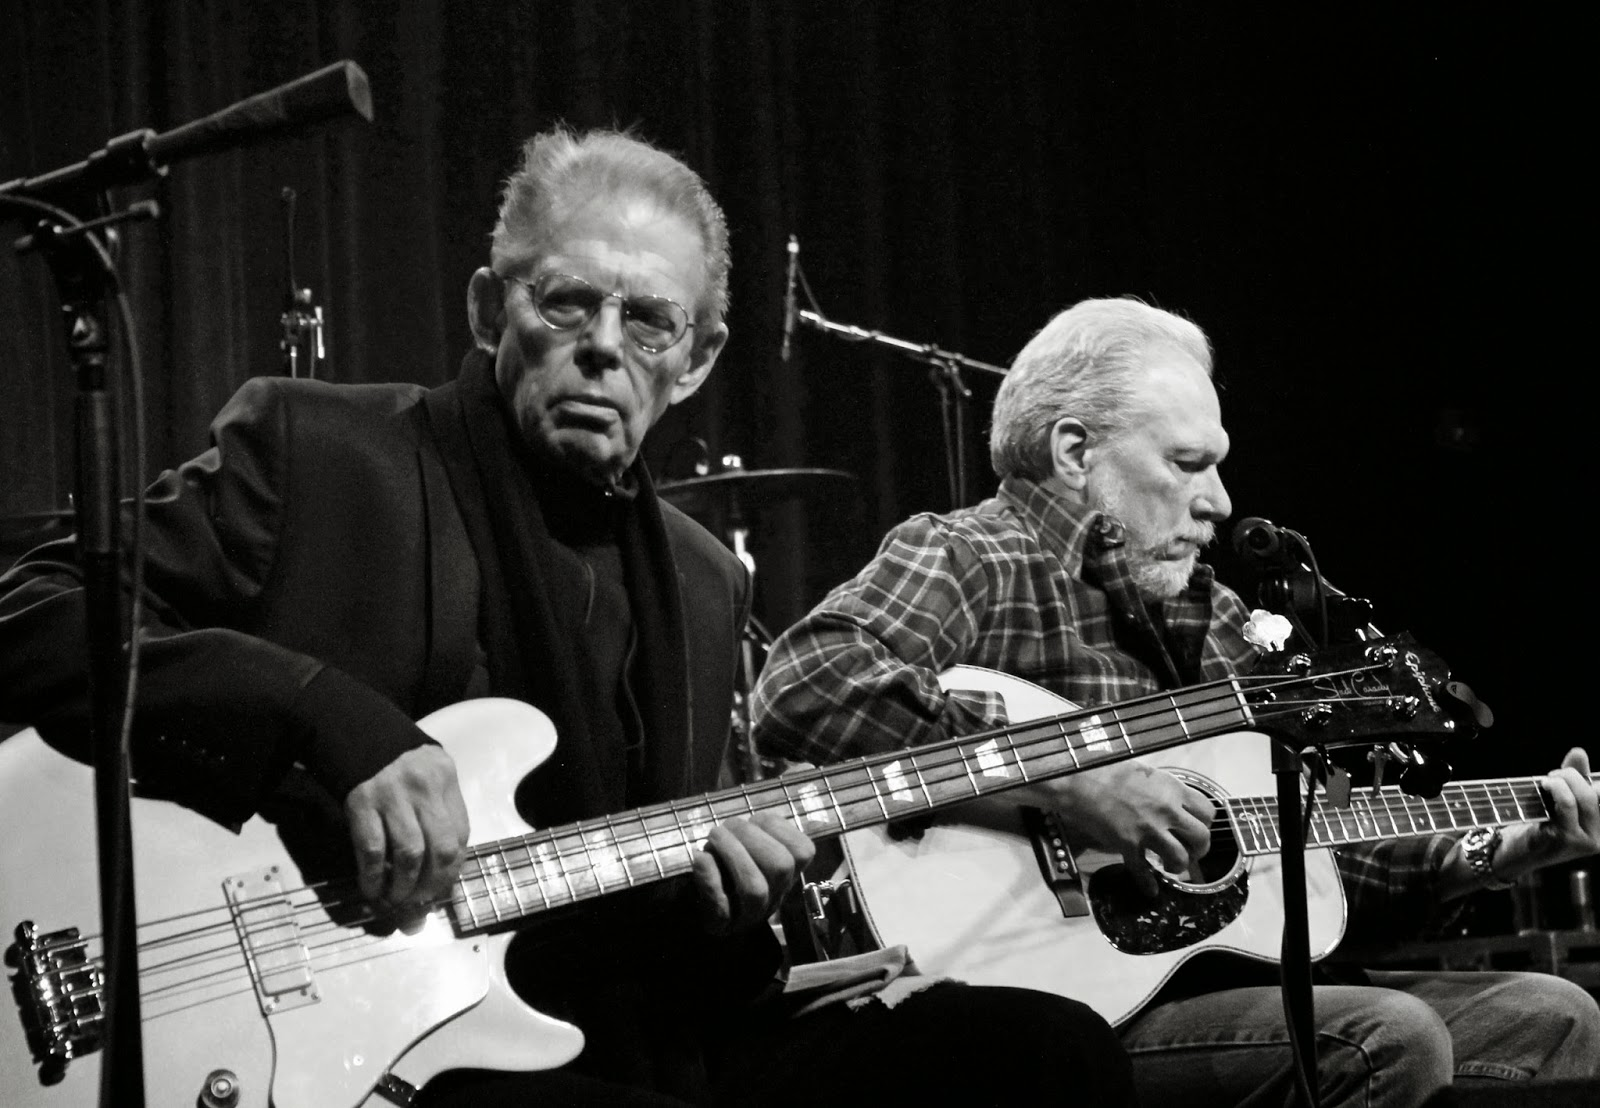 Hot Tuna/Leon Russell pics, Jan. 14, 2014